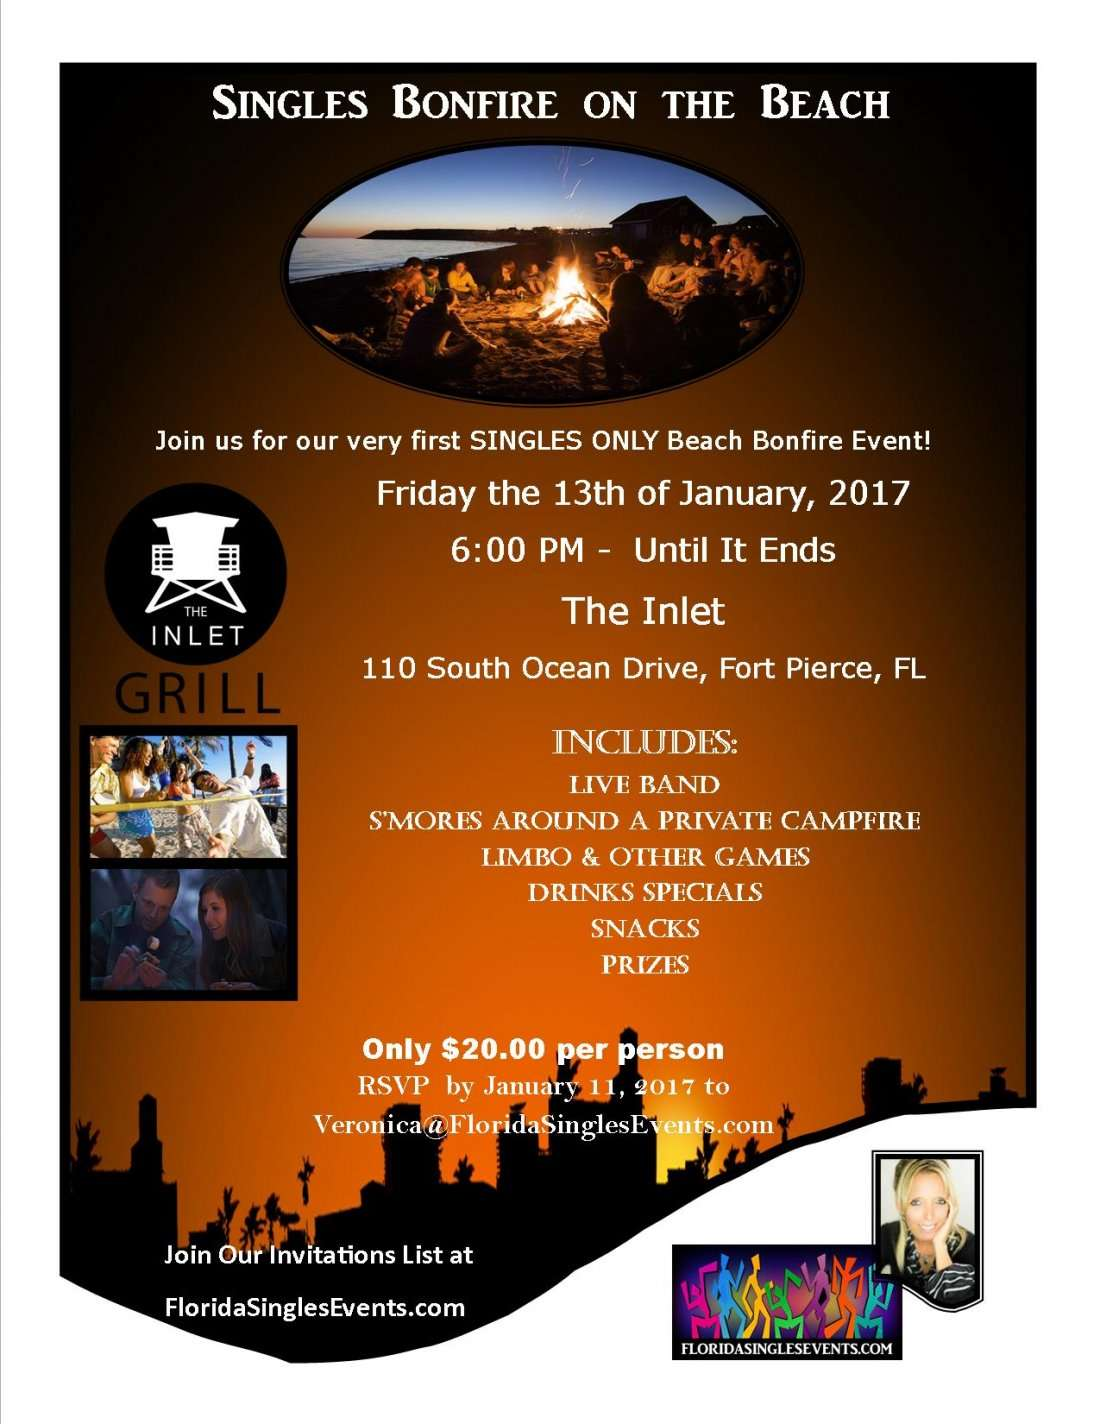 Singles Bonfire on the Beach at The Inlet Fort Pierce